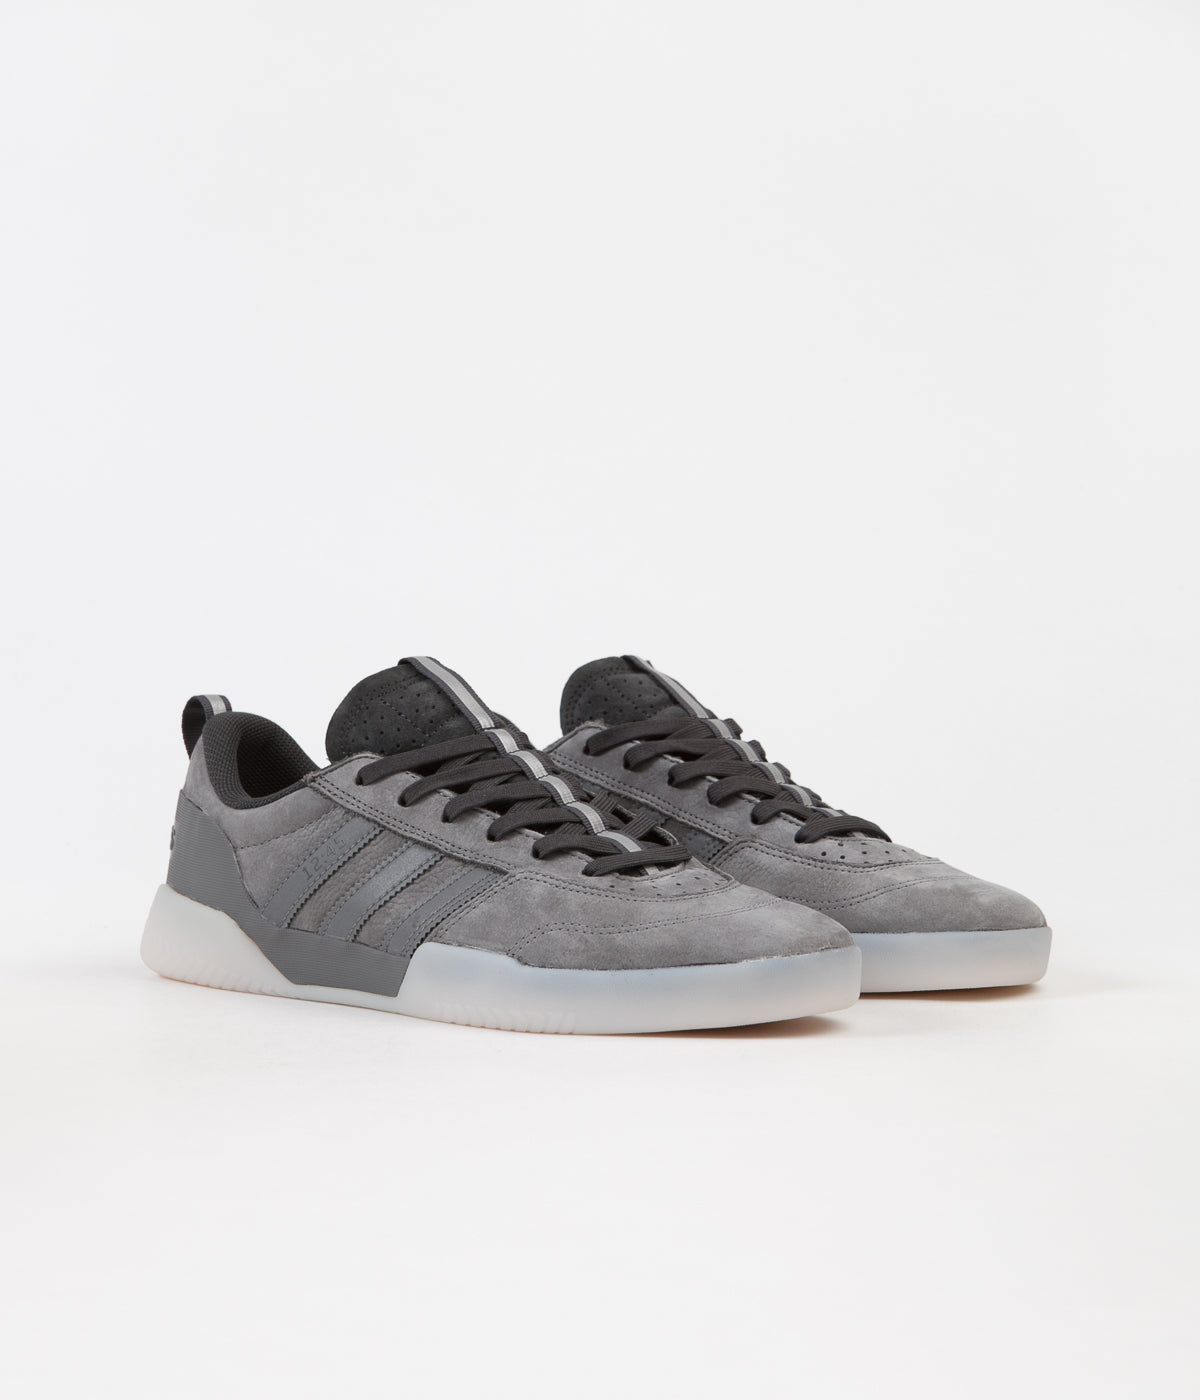 separation shoes ce553 062db ... Adidas x Numbers City Cup Shoes - Grey Four   Carbon   Grey One ...